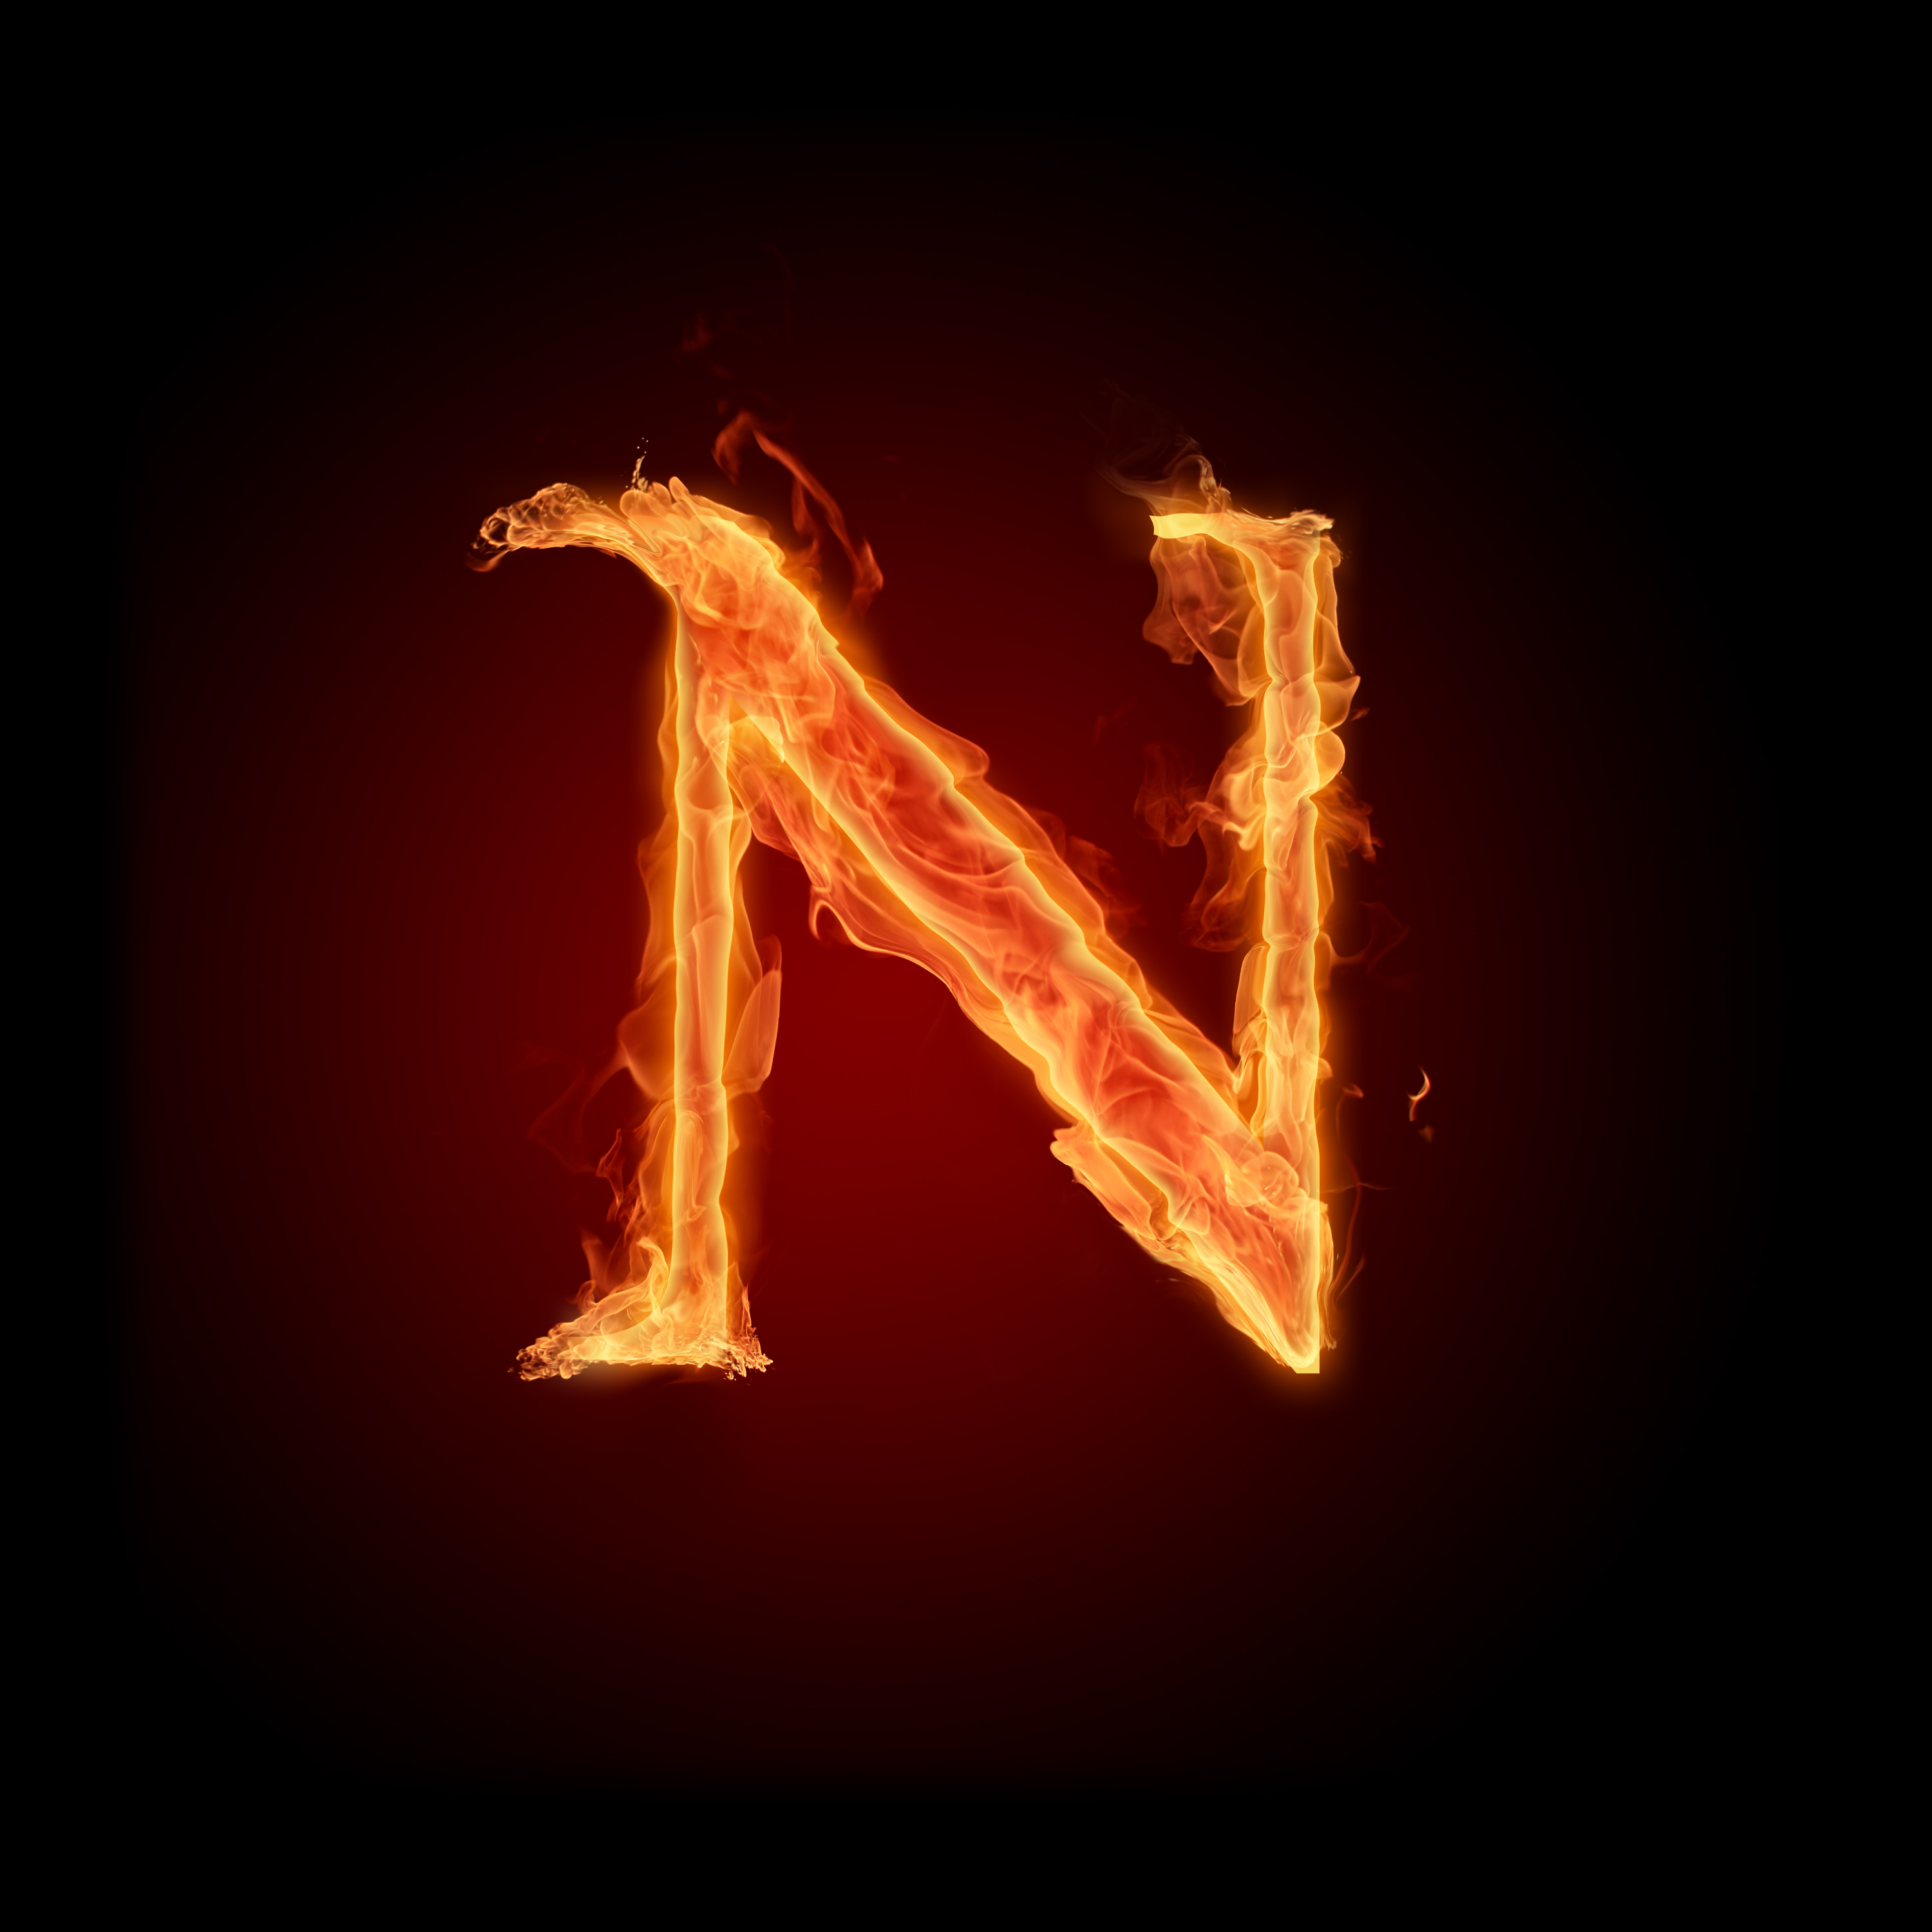 Fire Letters Wallpapers HD 3000X3000 M R Photo 6 Of Phombocom 3000x3000